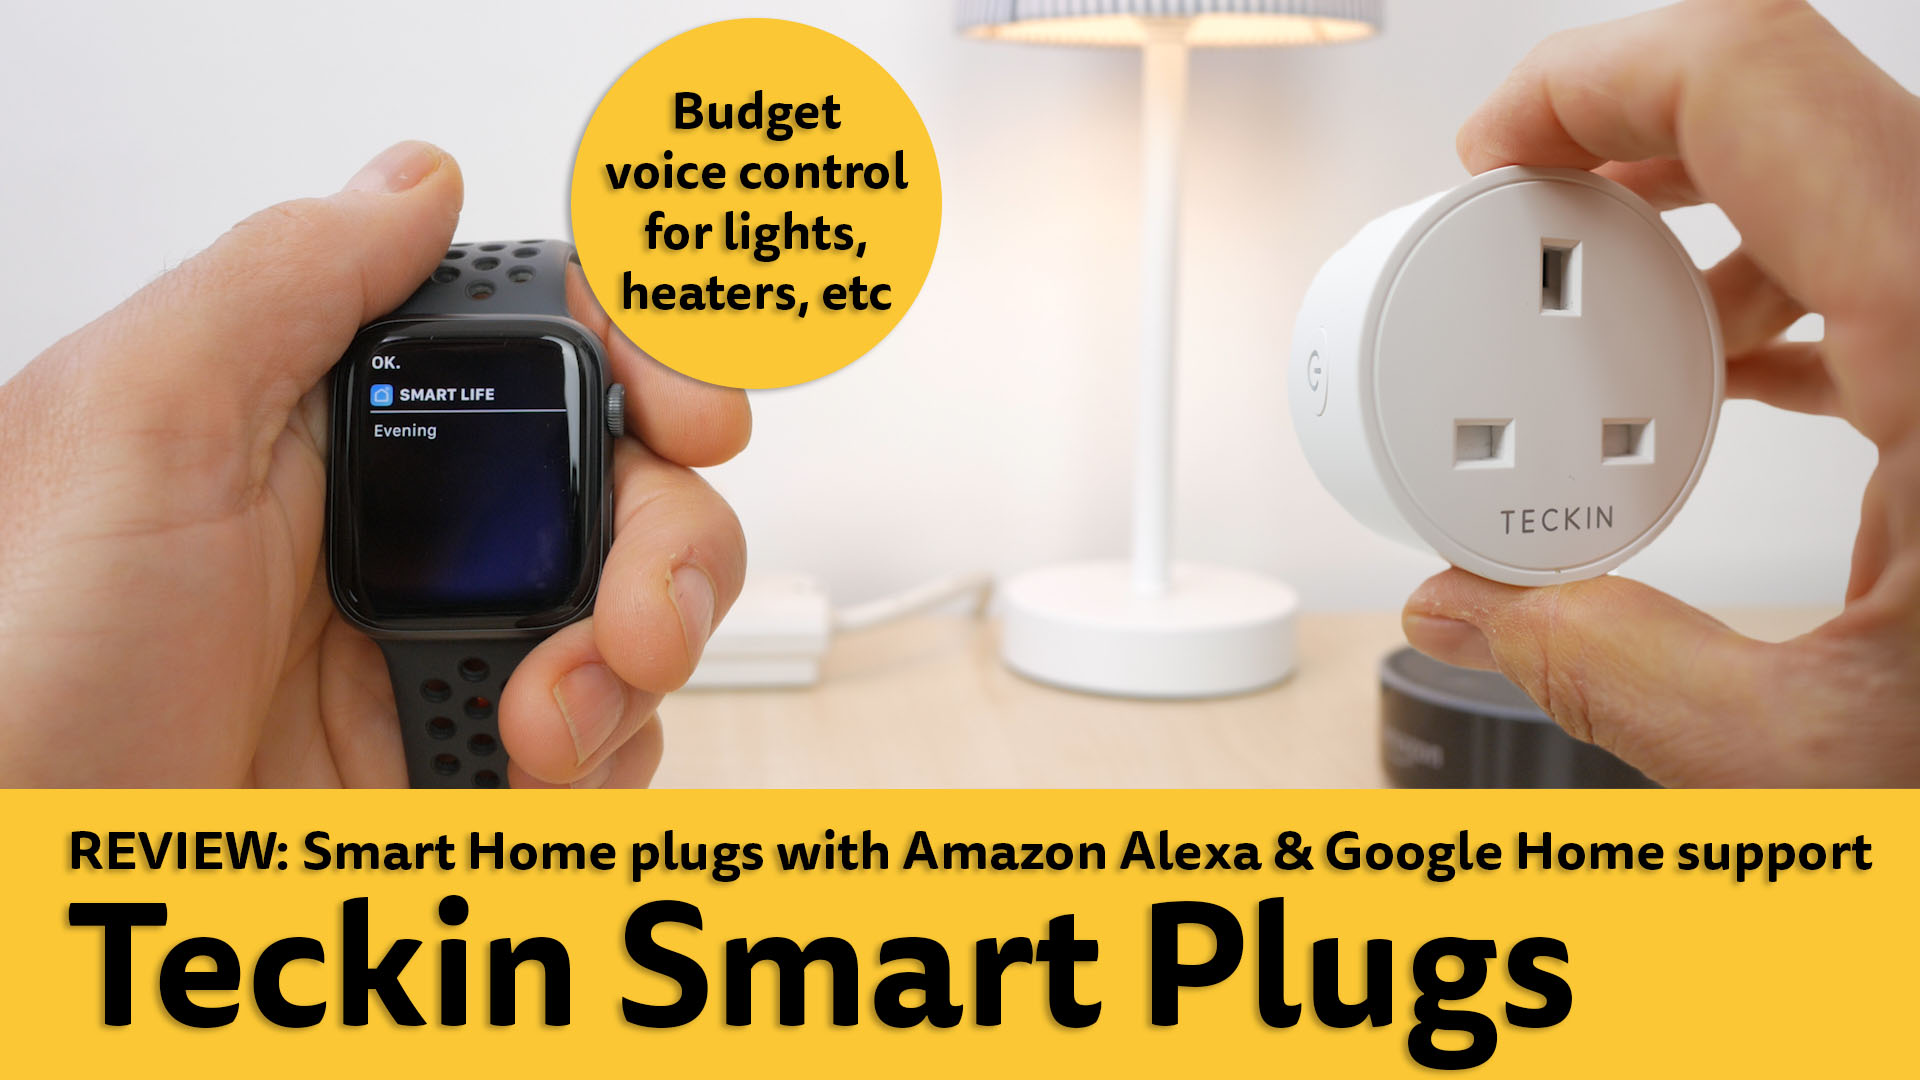 Review: Teckin Smart Plugs  Budget smart home with Amazon